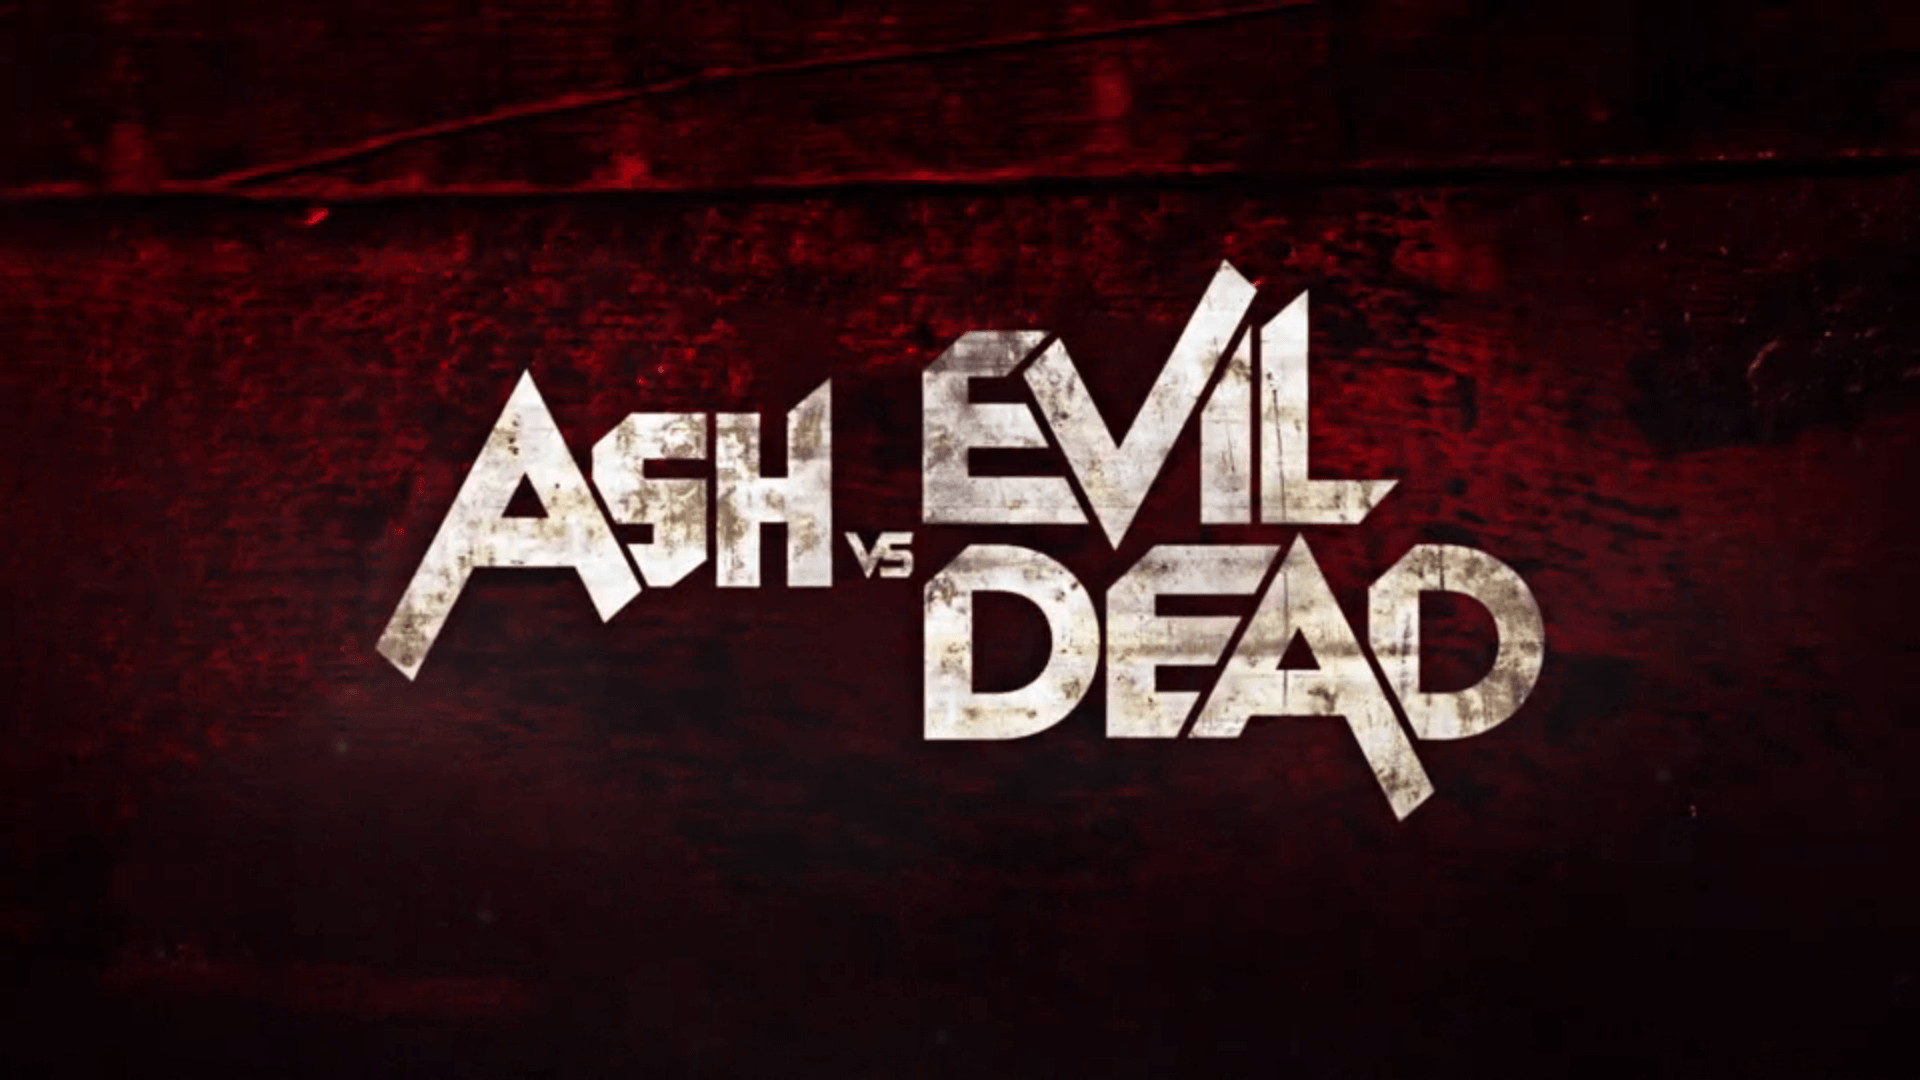 1920x1080 Ash vs Evil Dead Wallpapers | Just Good Vibe